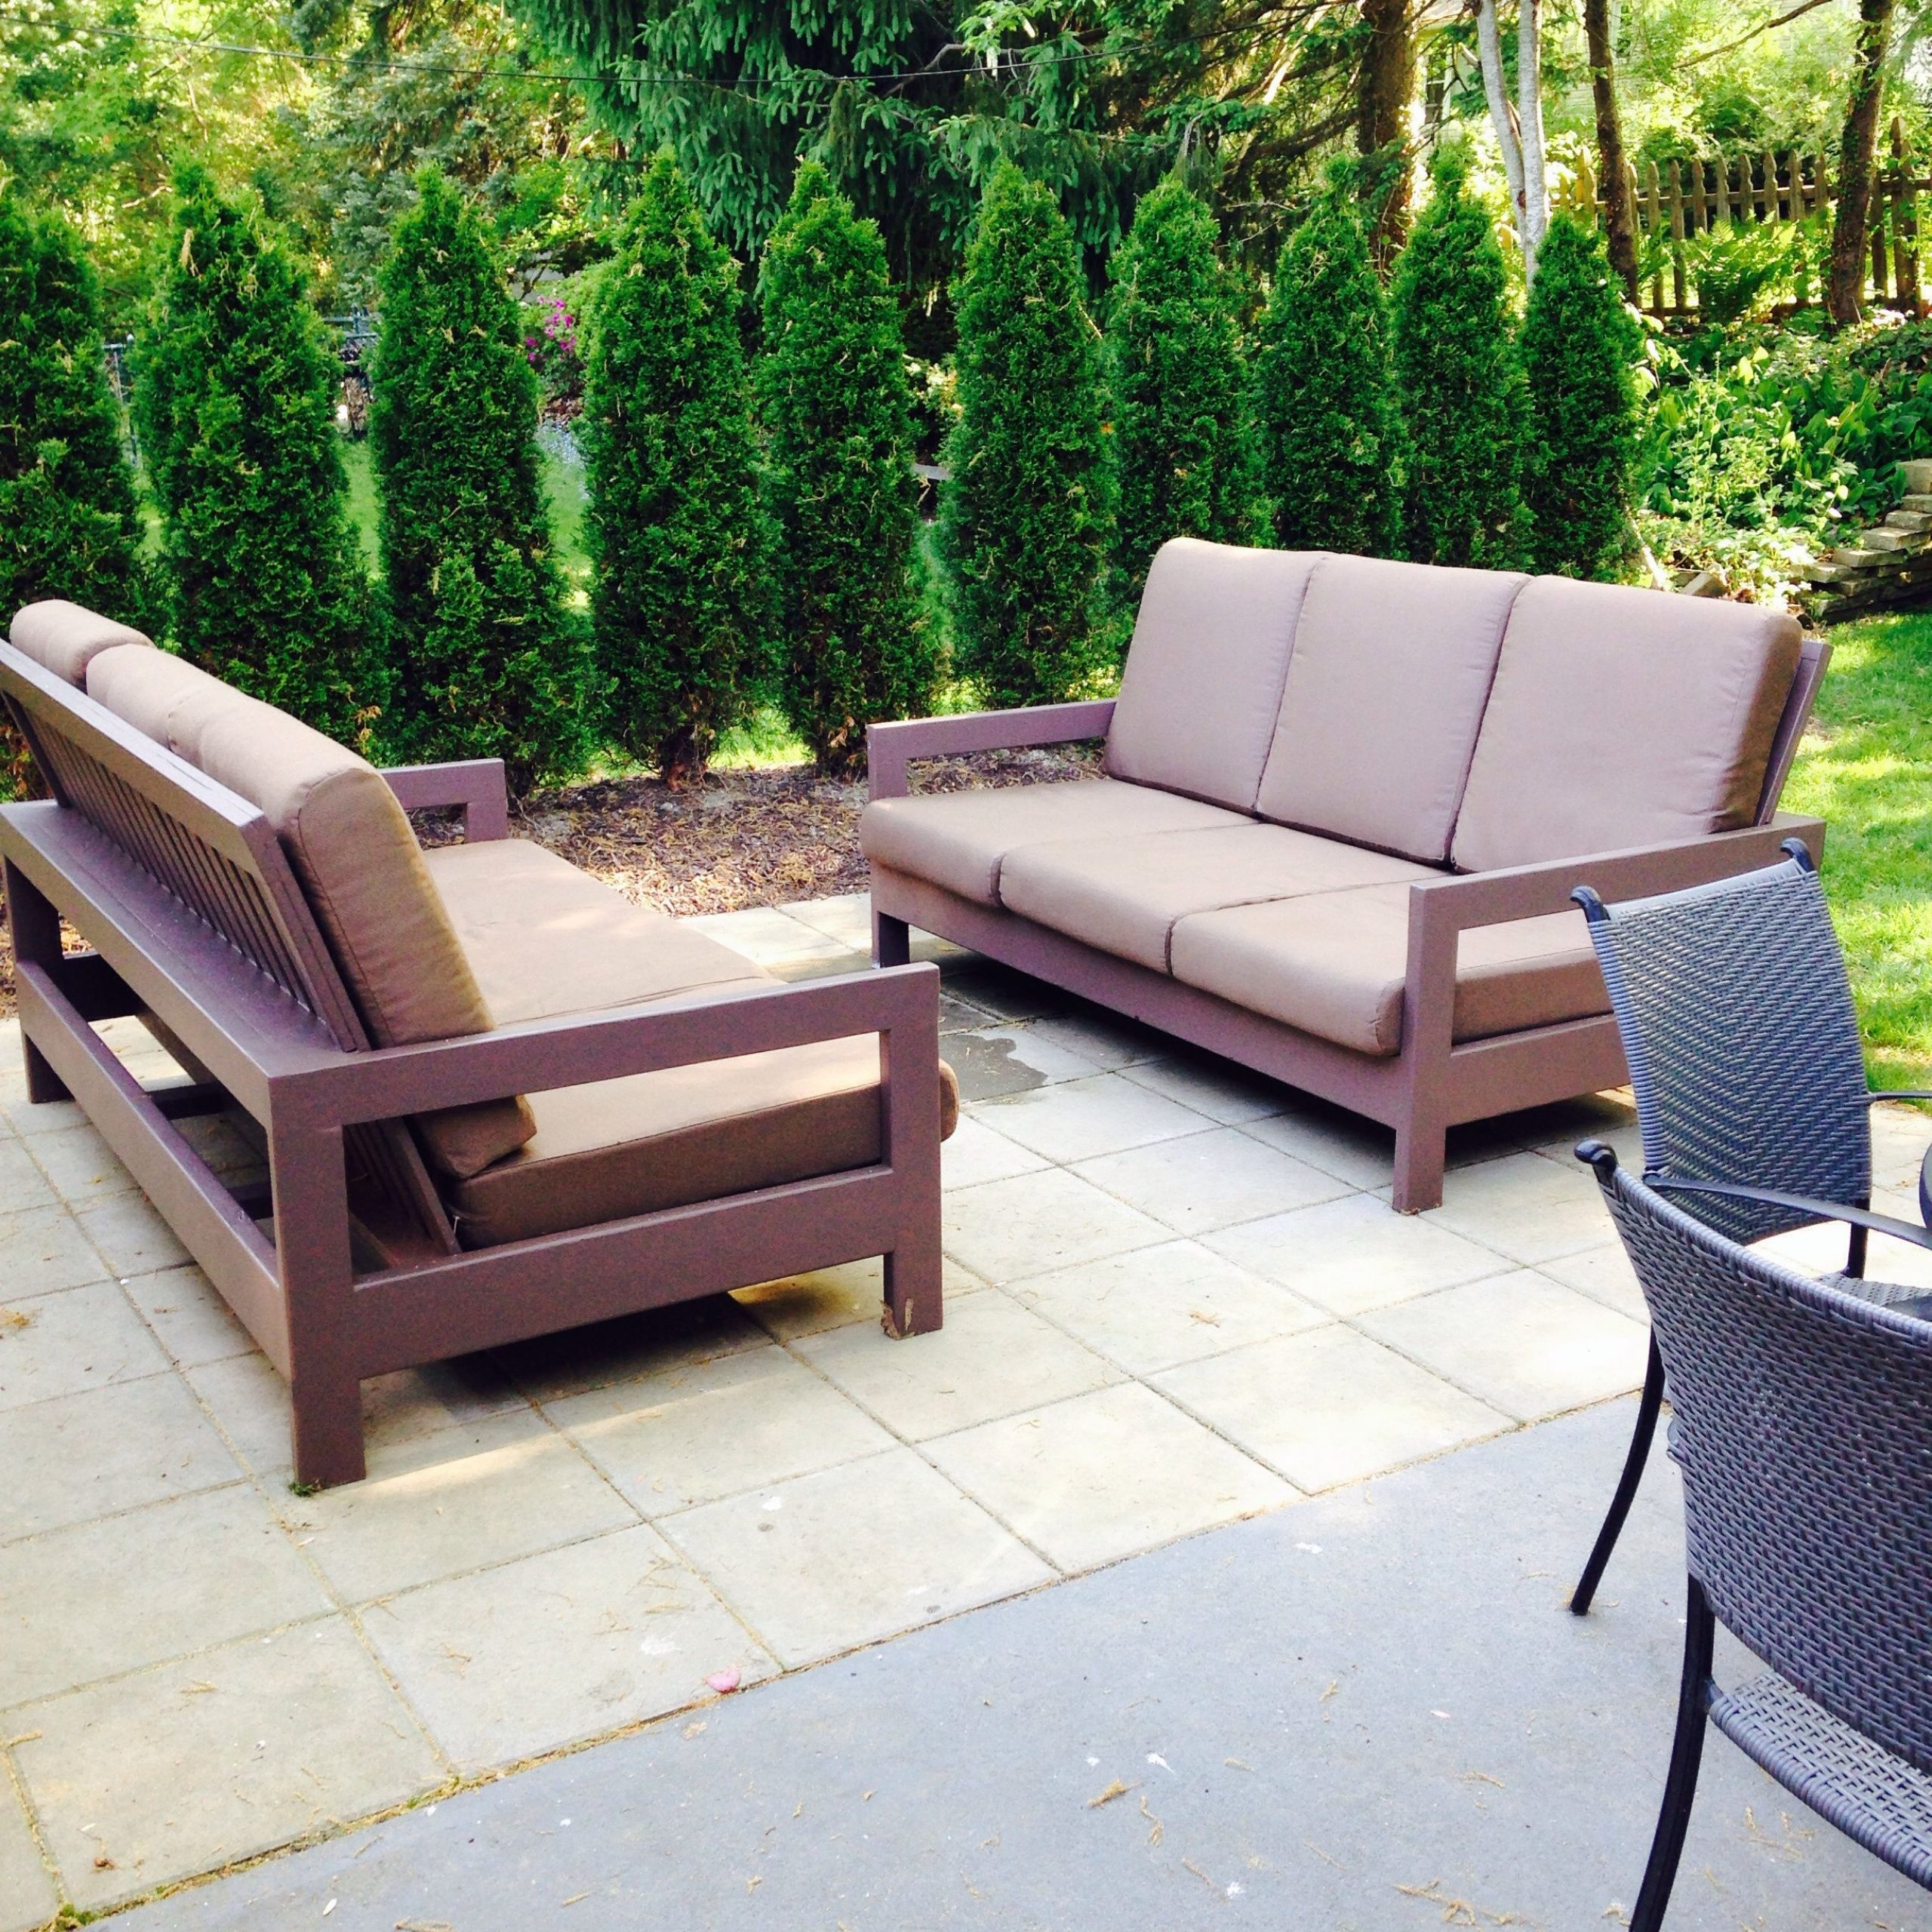 O'kean Teak Patio Sofas With Cushions With Popular Outdoor Patio Couches (View 18 of 25)